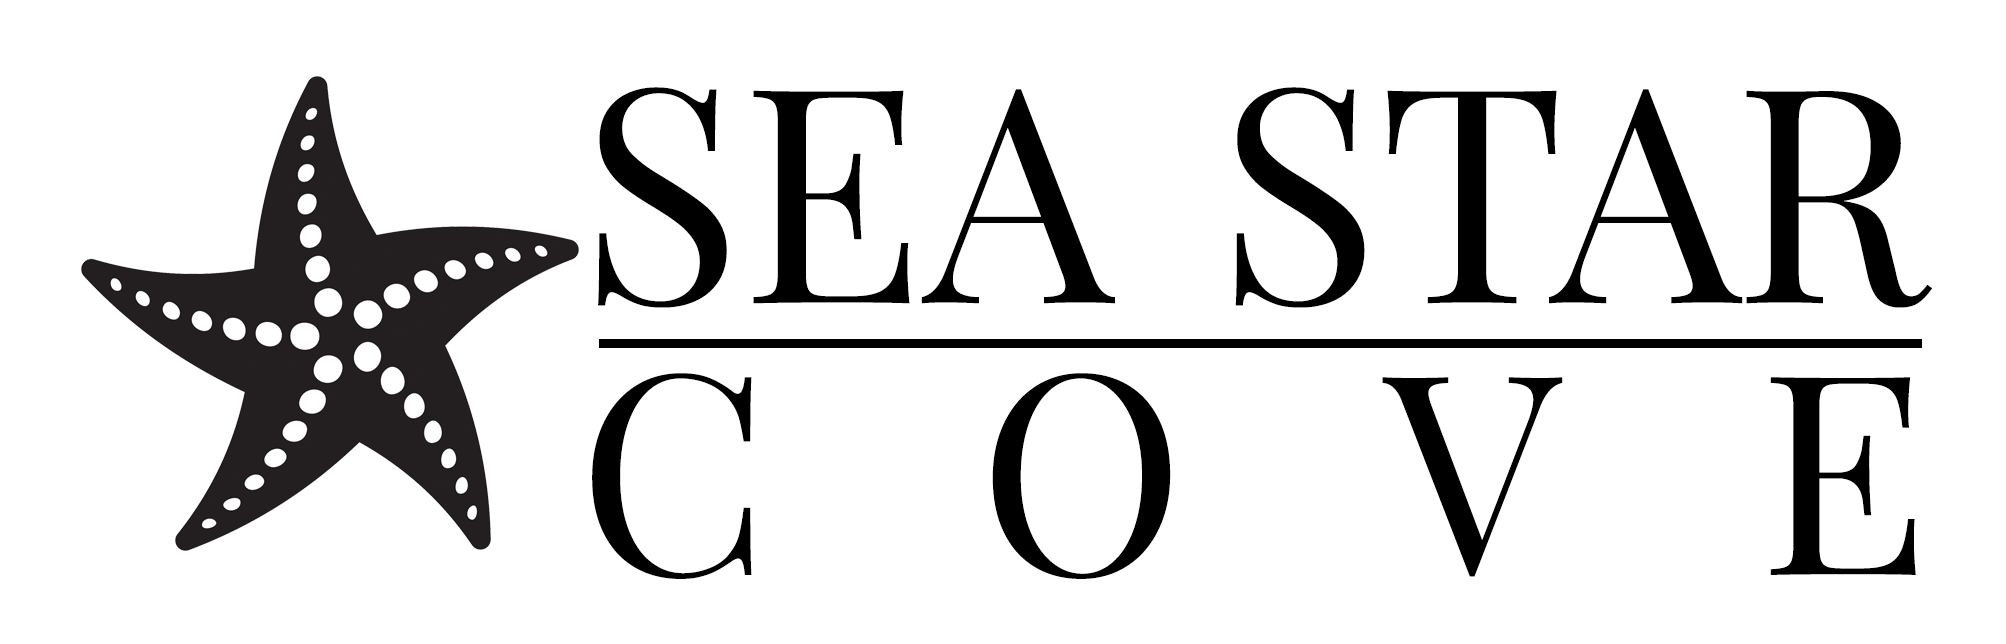 seastarcove_logo_black_1